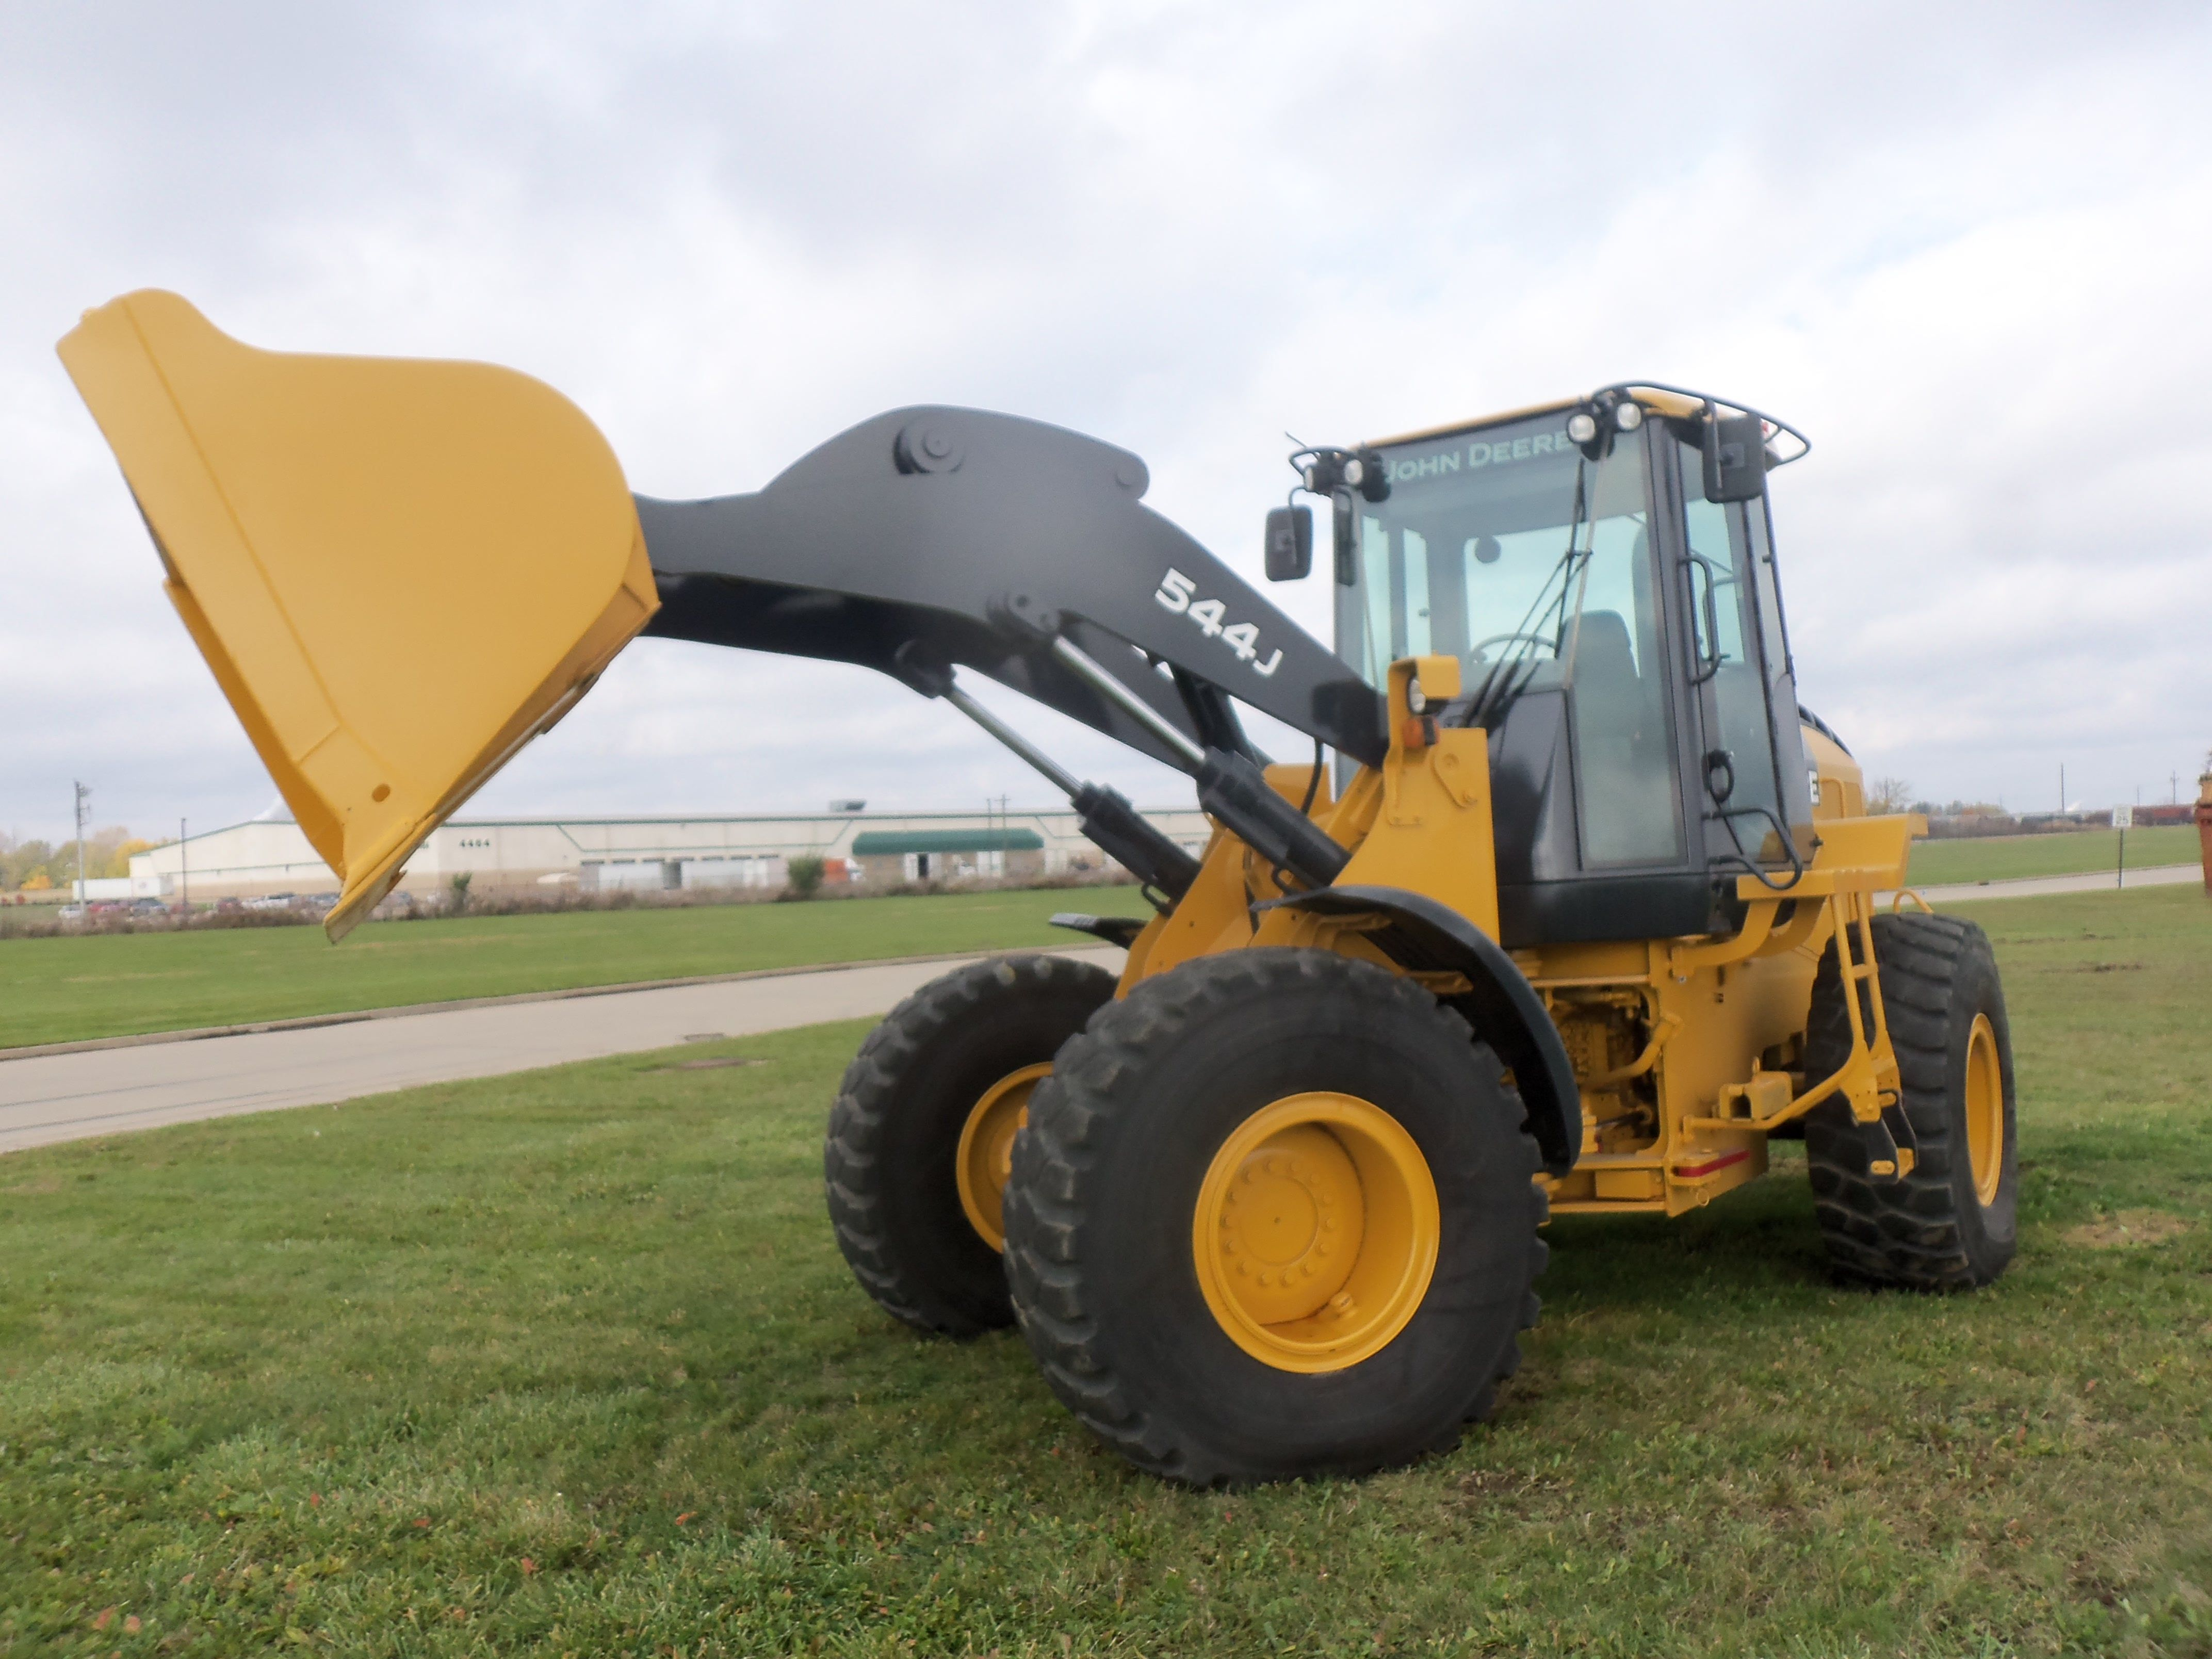 156 gross,134 net hp John Deere 544J with its loader arms up